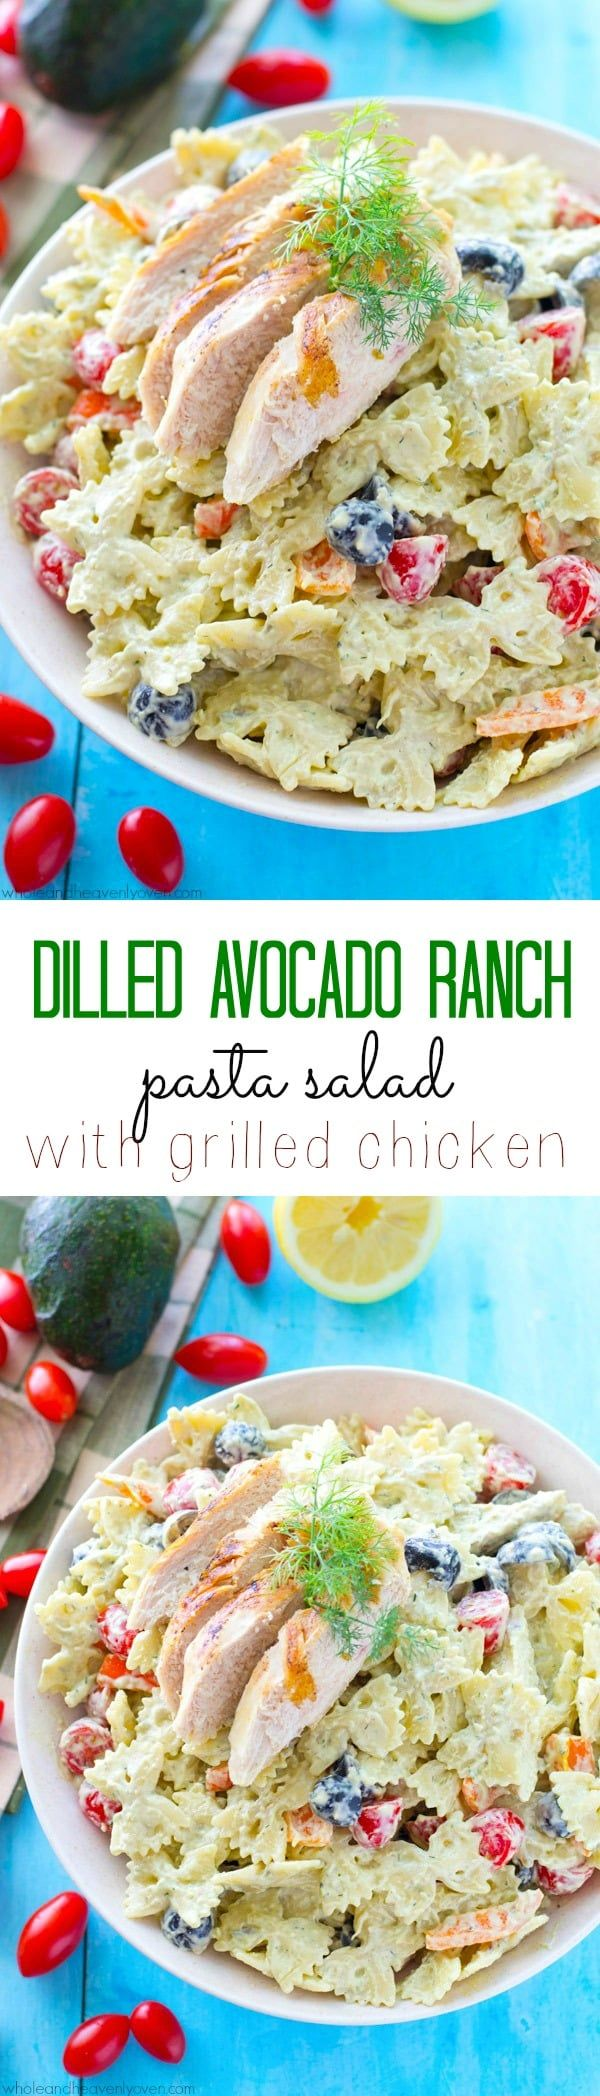 Dilled Avocado Ranch Pasta Salad with Grilled Chicken #avocadoranch